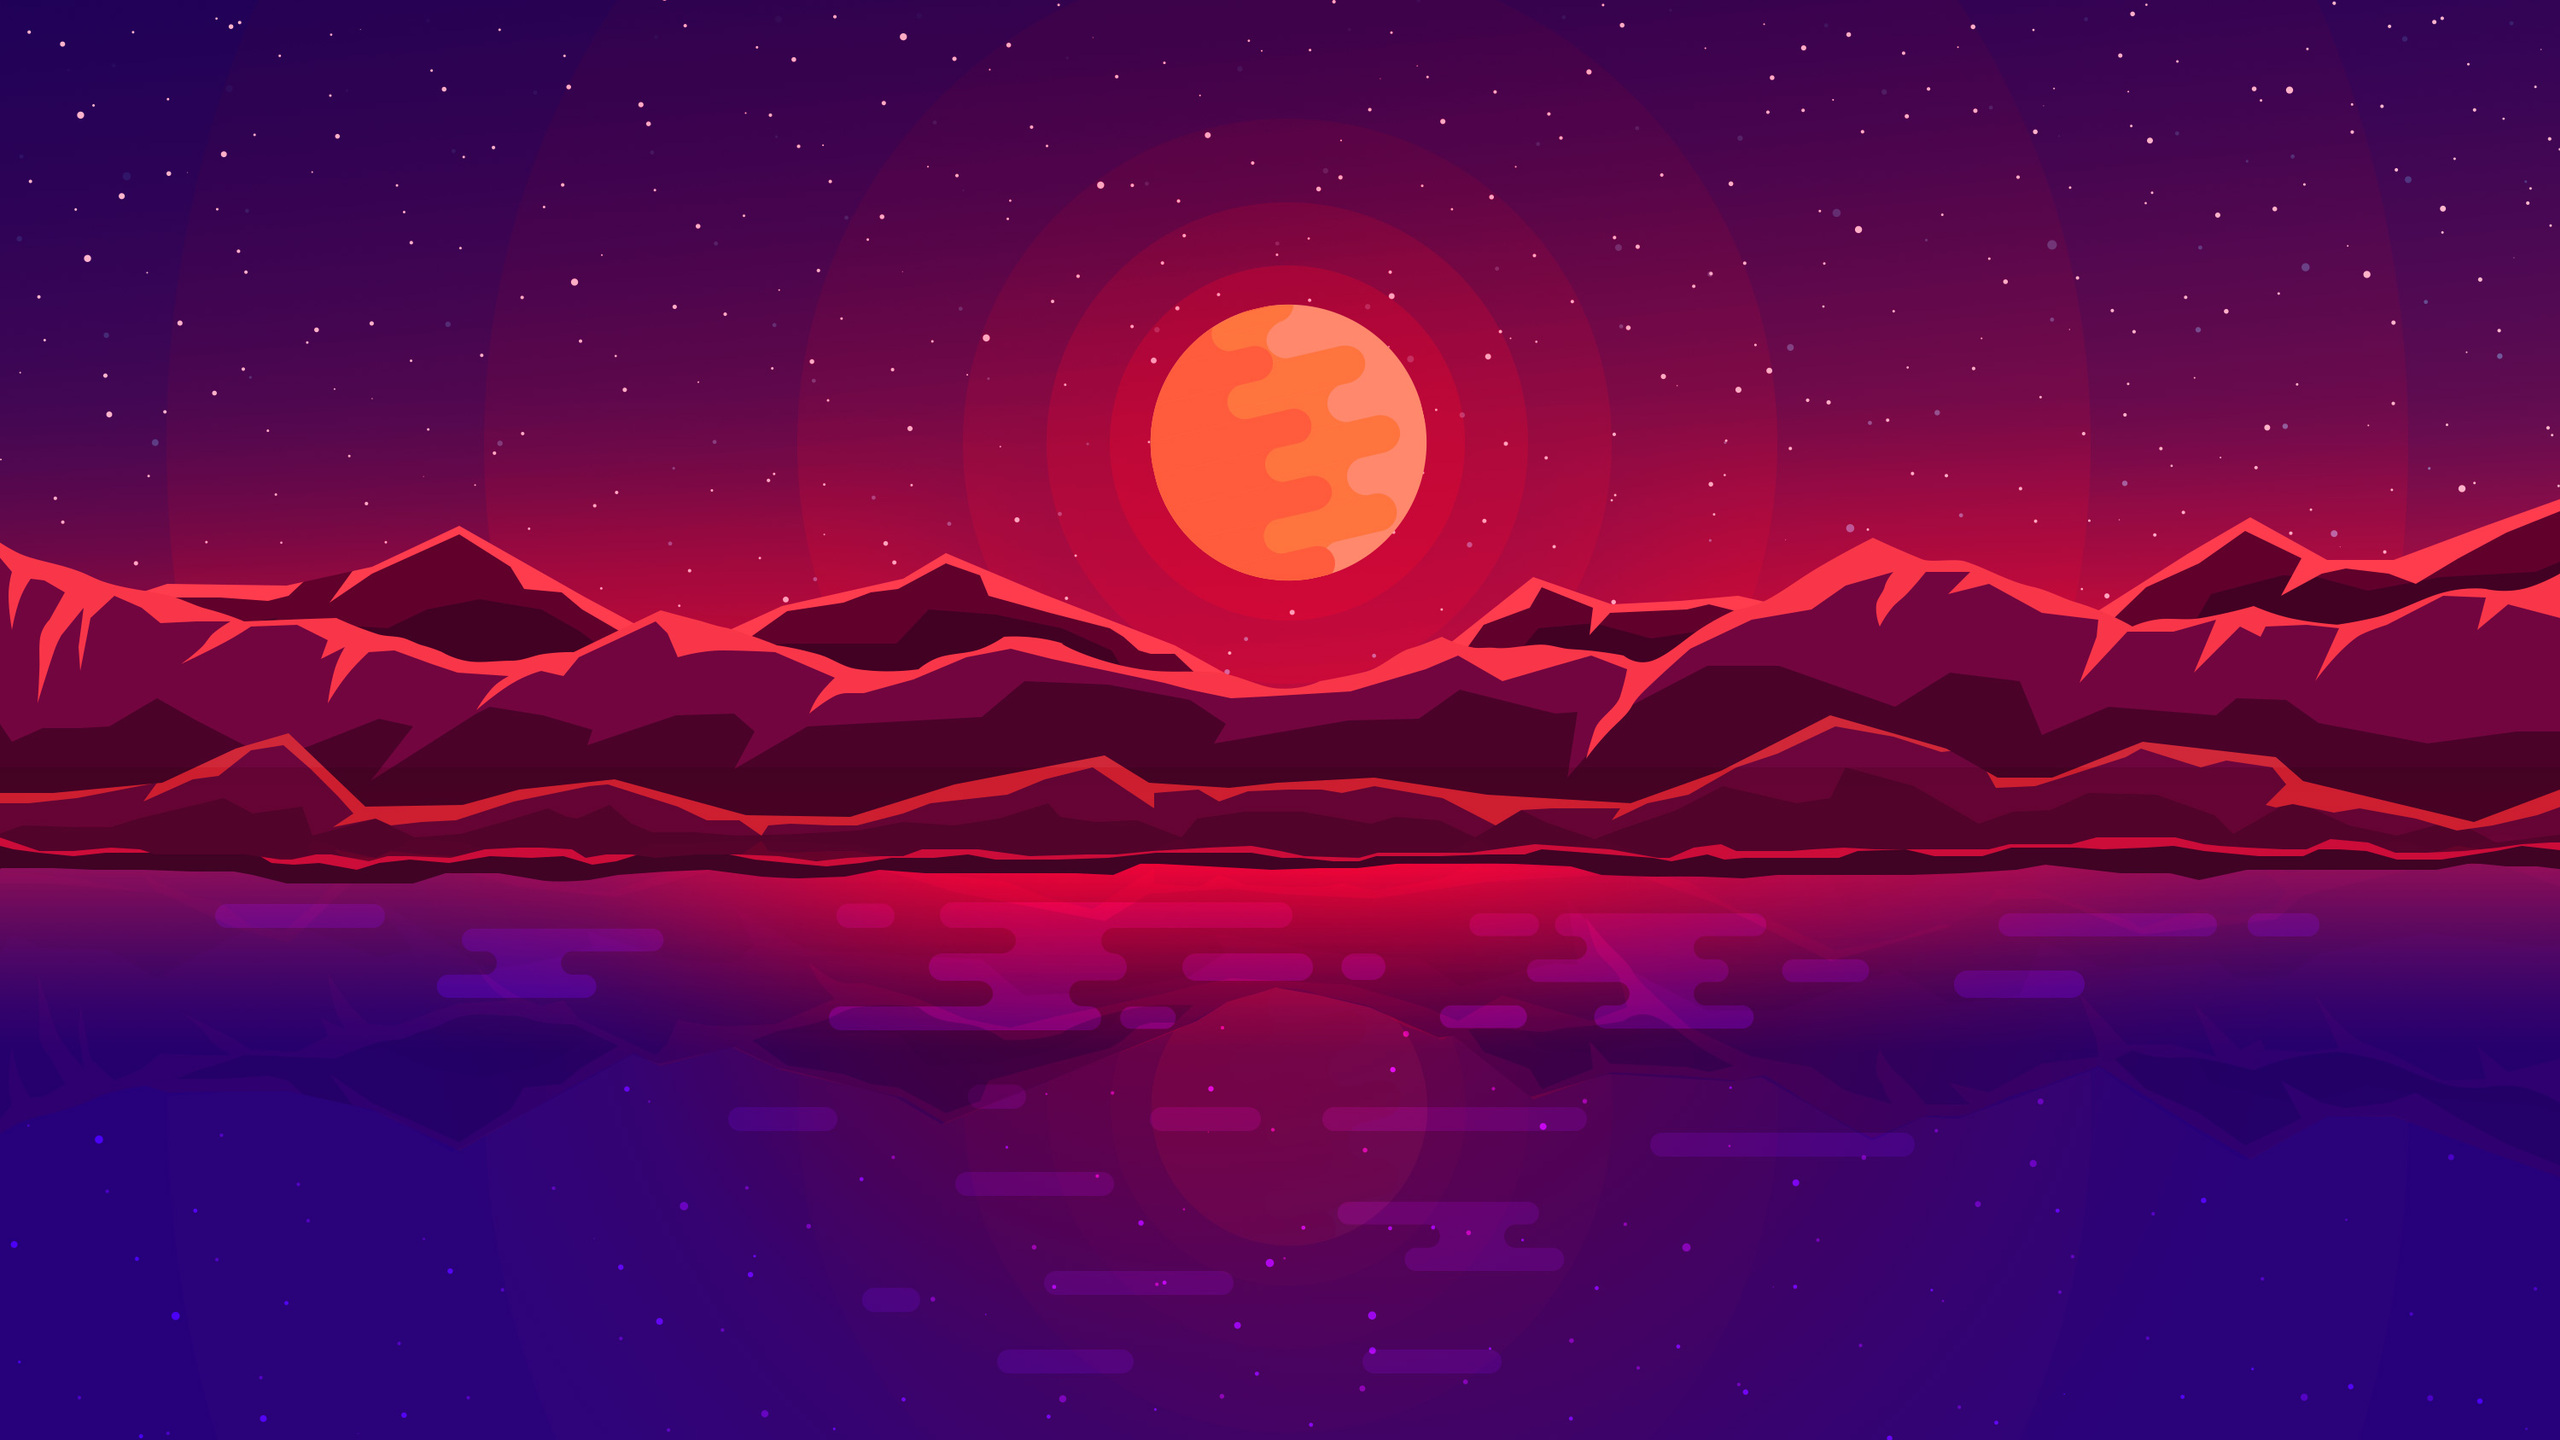 2560x1440 moon rays red space sky abstract mountains 1440p - Space 2560 x 1440 ...